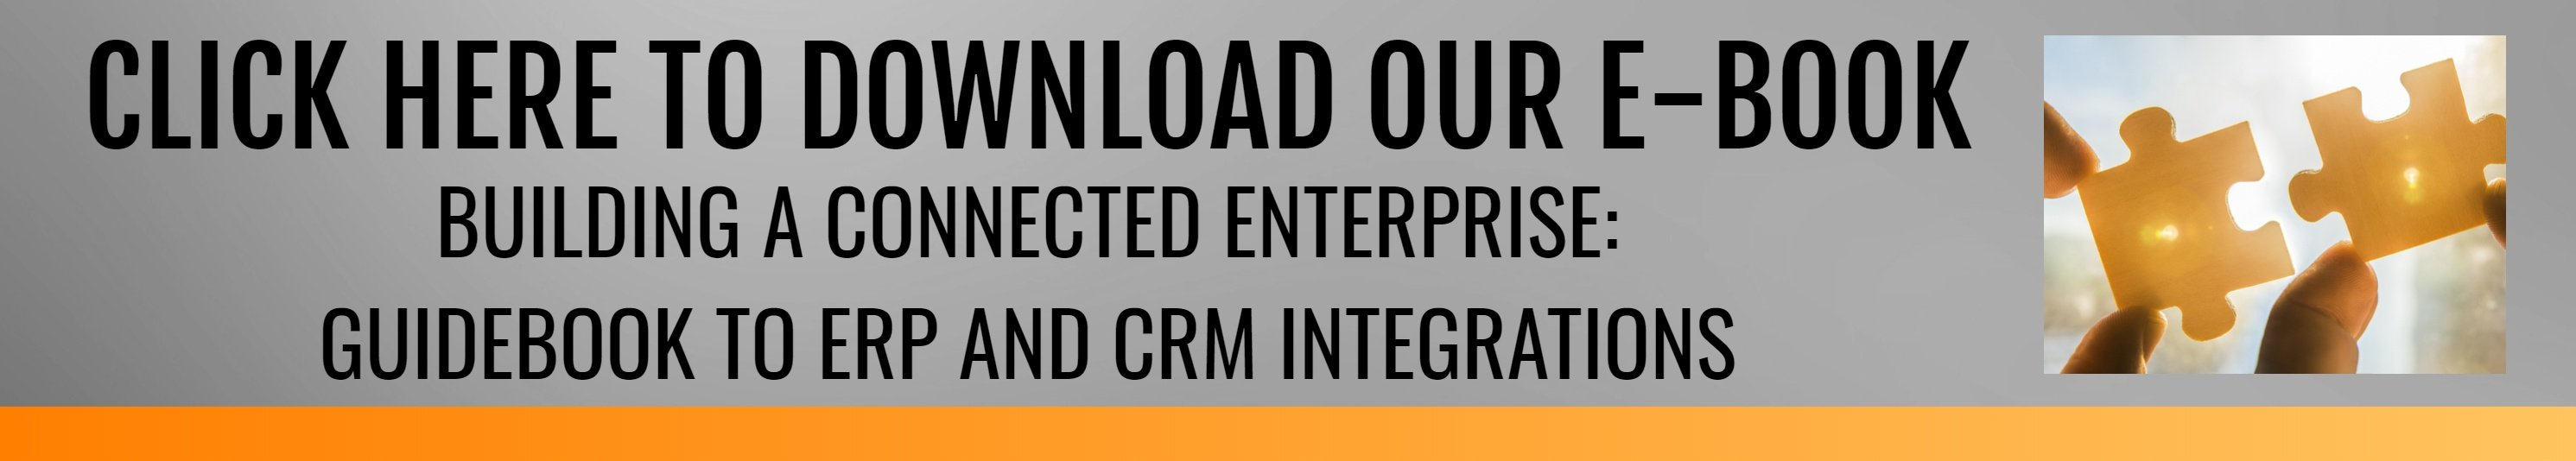 ERP CRM Integration Guide